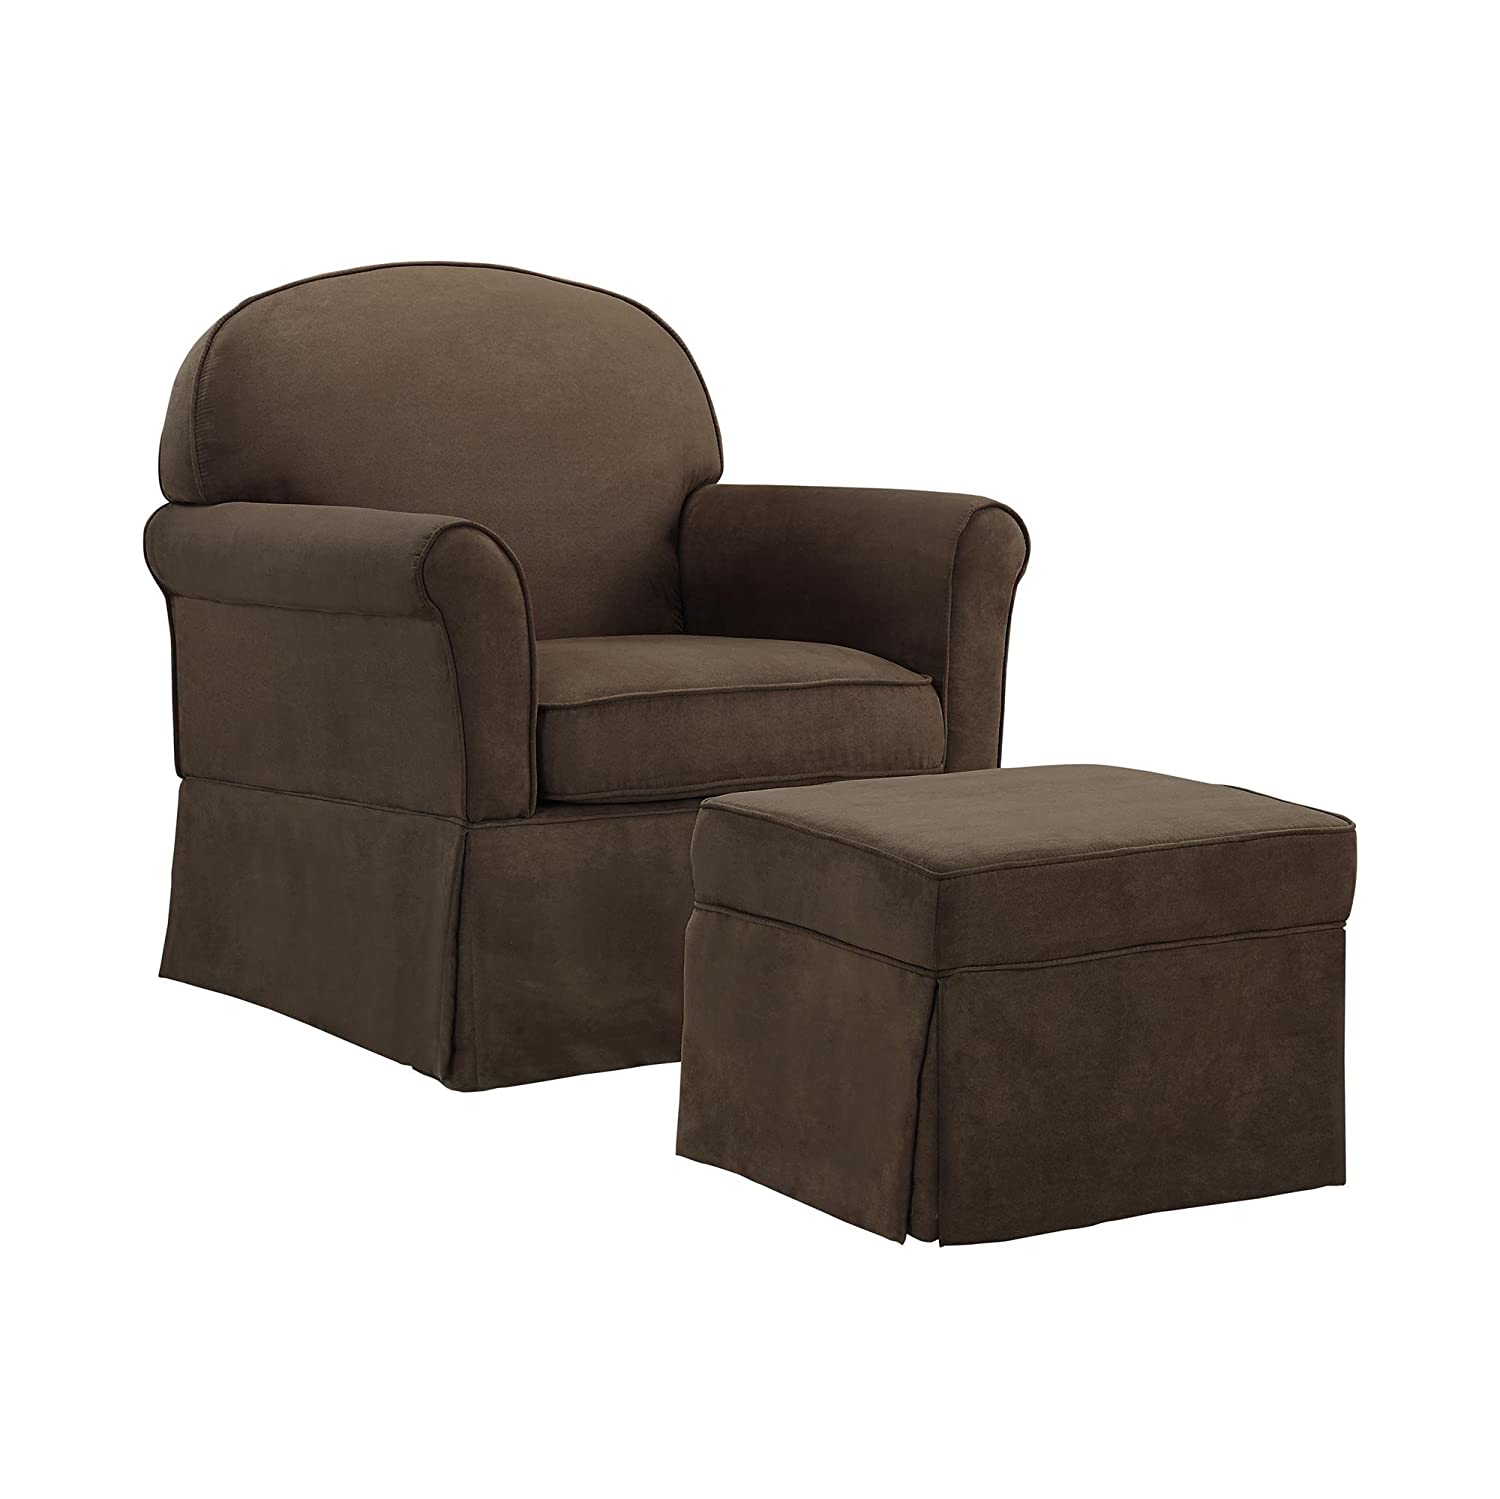 Baby Relax Swivel Glider and Ottoman Set, Light Grey Dorel Home Furnishings WM6009SGO-MG